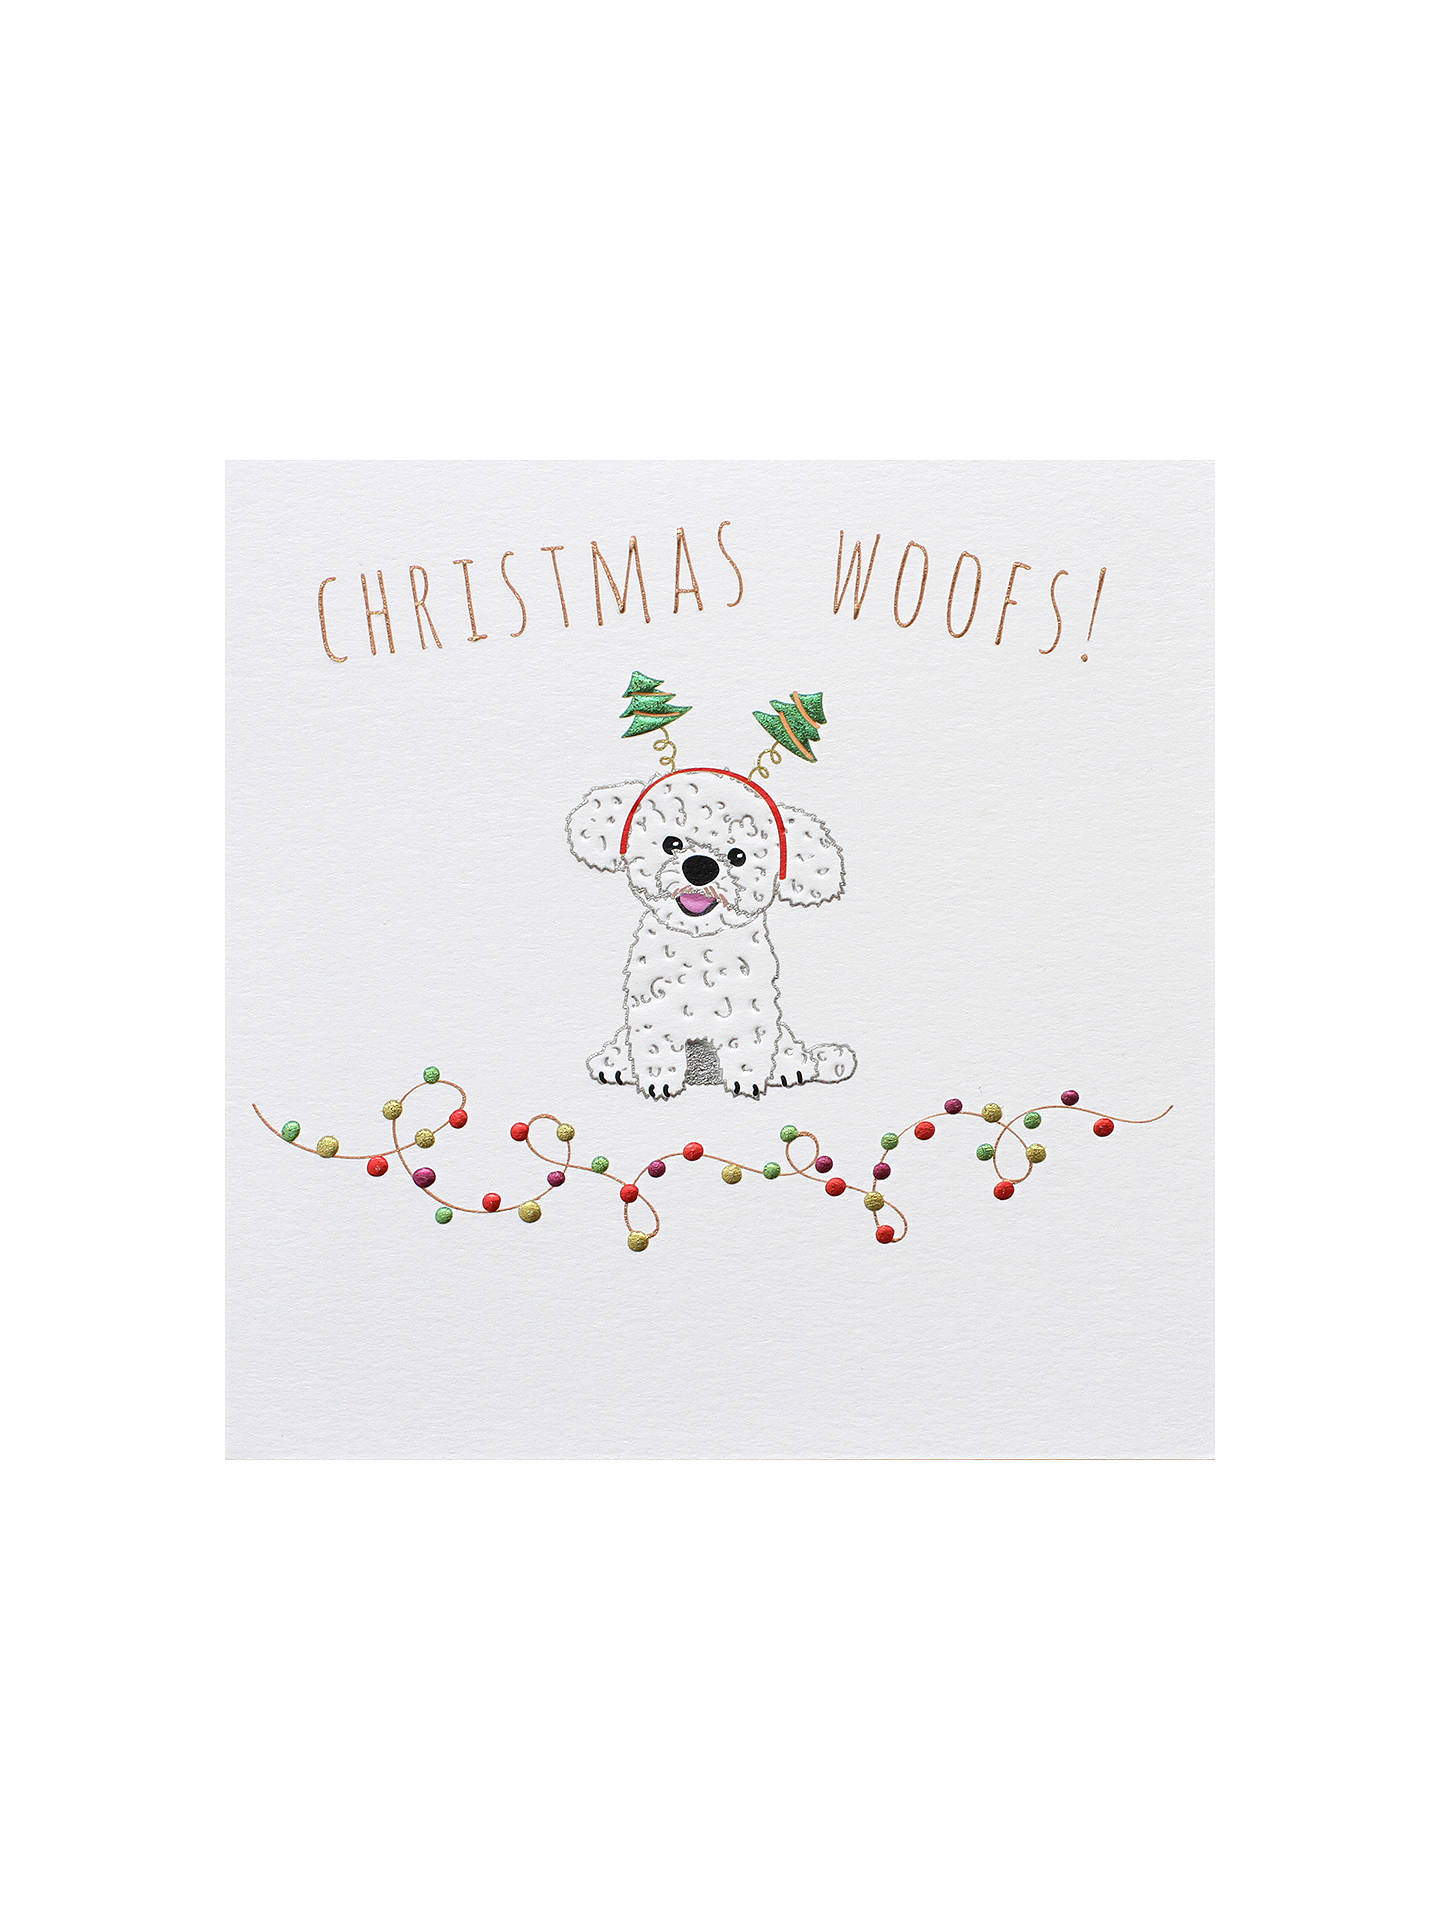 Belly Button Designs Christmas Woofs Christmas Card at John Lewis ...